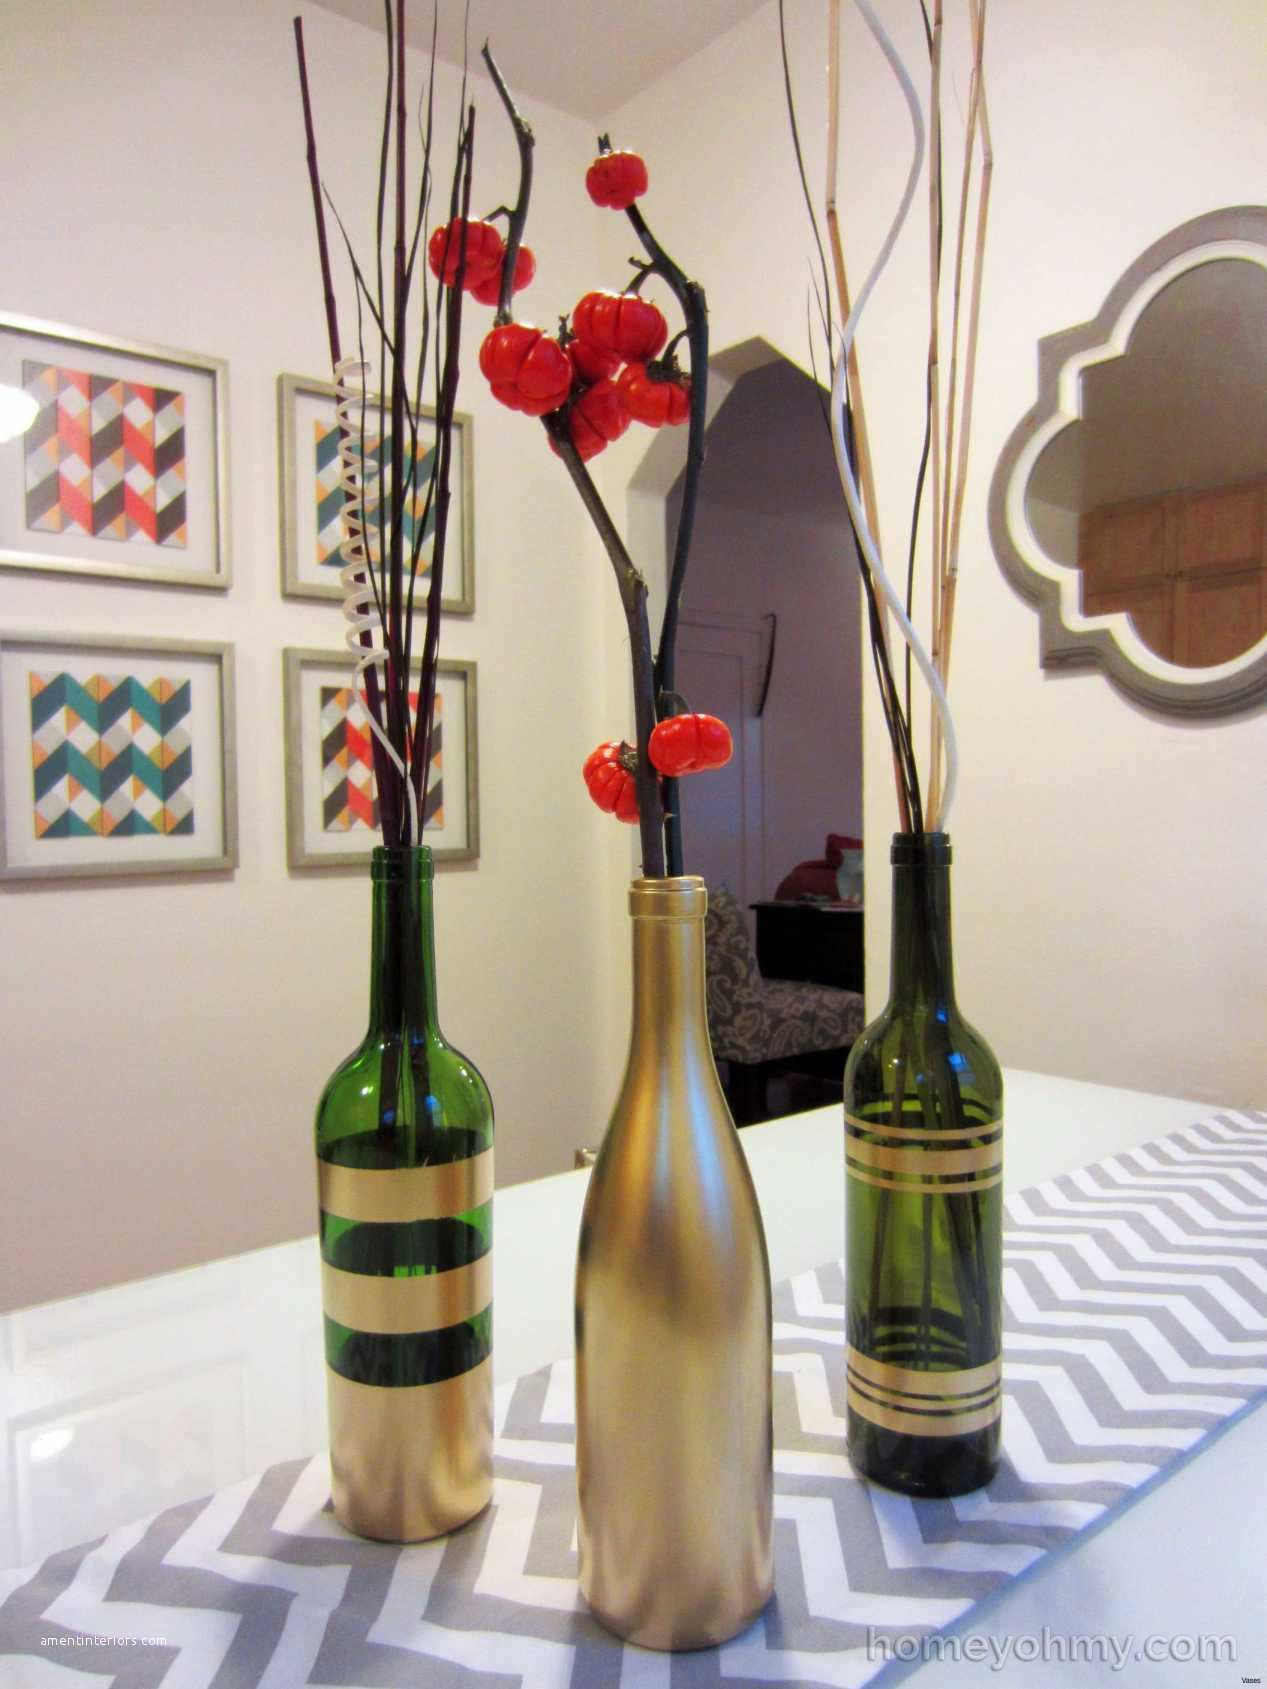 Mosaic Vase Diy Of Charming Pictures to Paint Styling Up Your H Vases How to Paint within Charming Pictures to Paint Styling Up Your H Vases How to Paint Ideas I 0d Design Ideas Cool Spray Paint Design